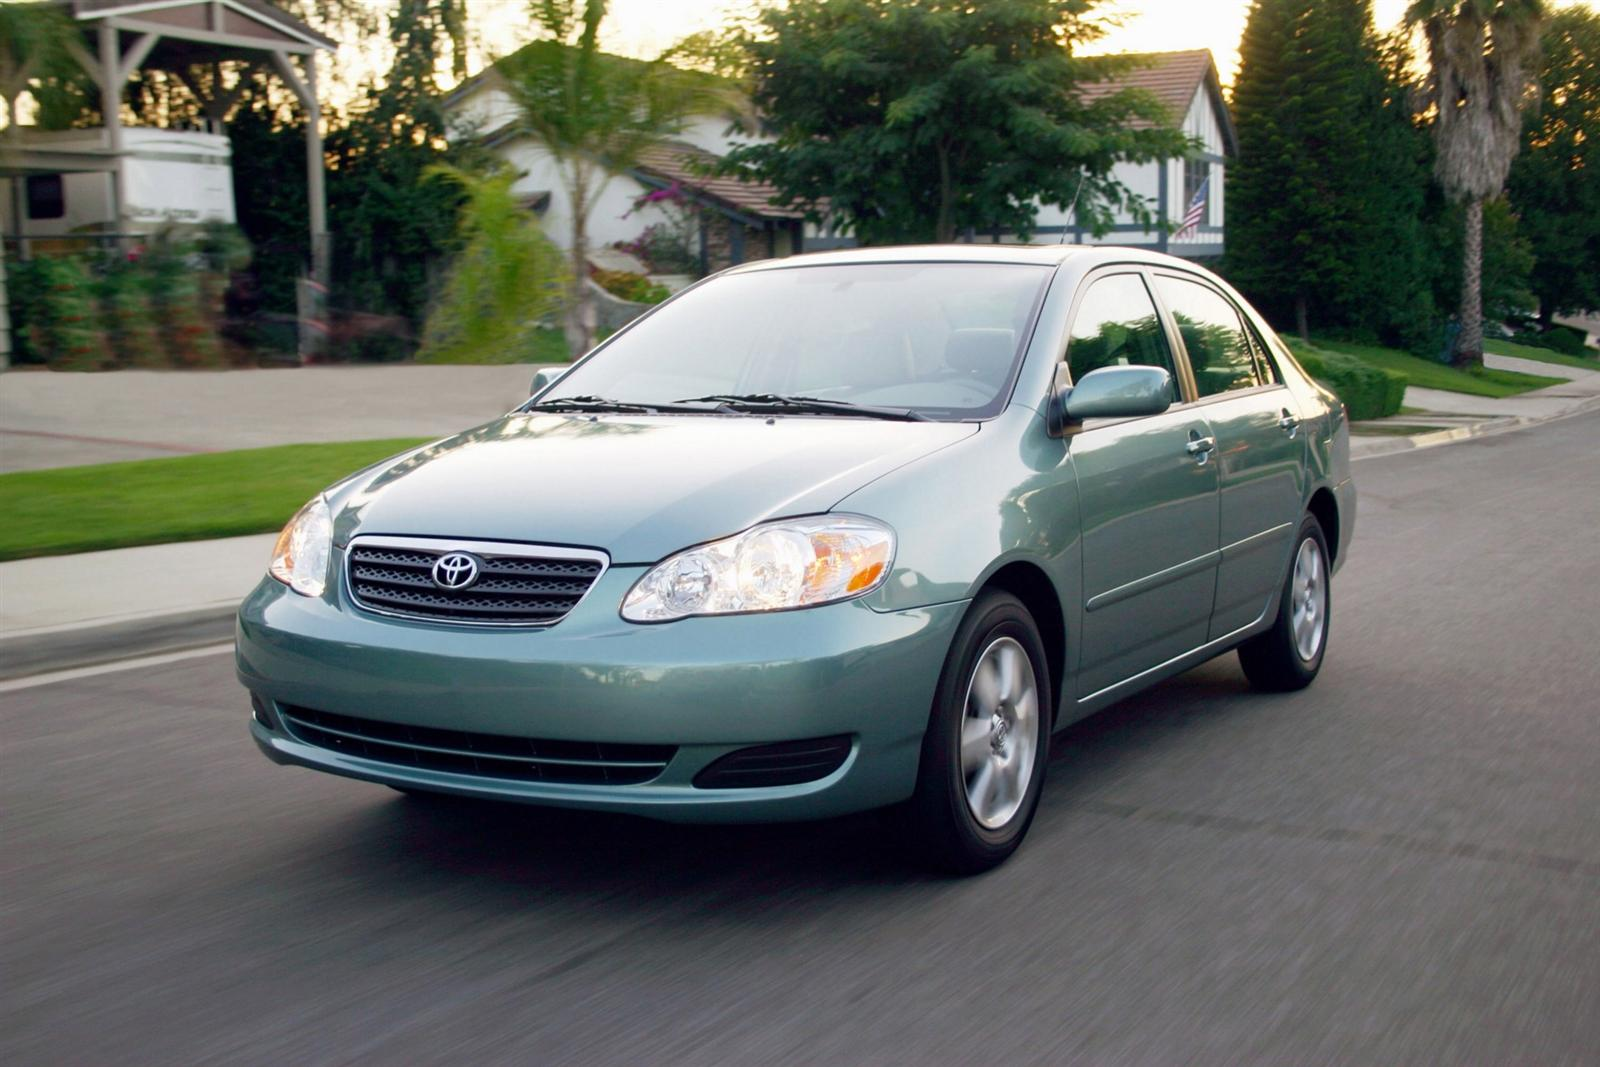 Light Blue 2009 Used Toyota Corolla driving on a suburban street